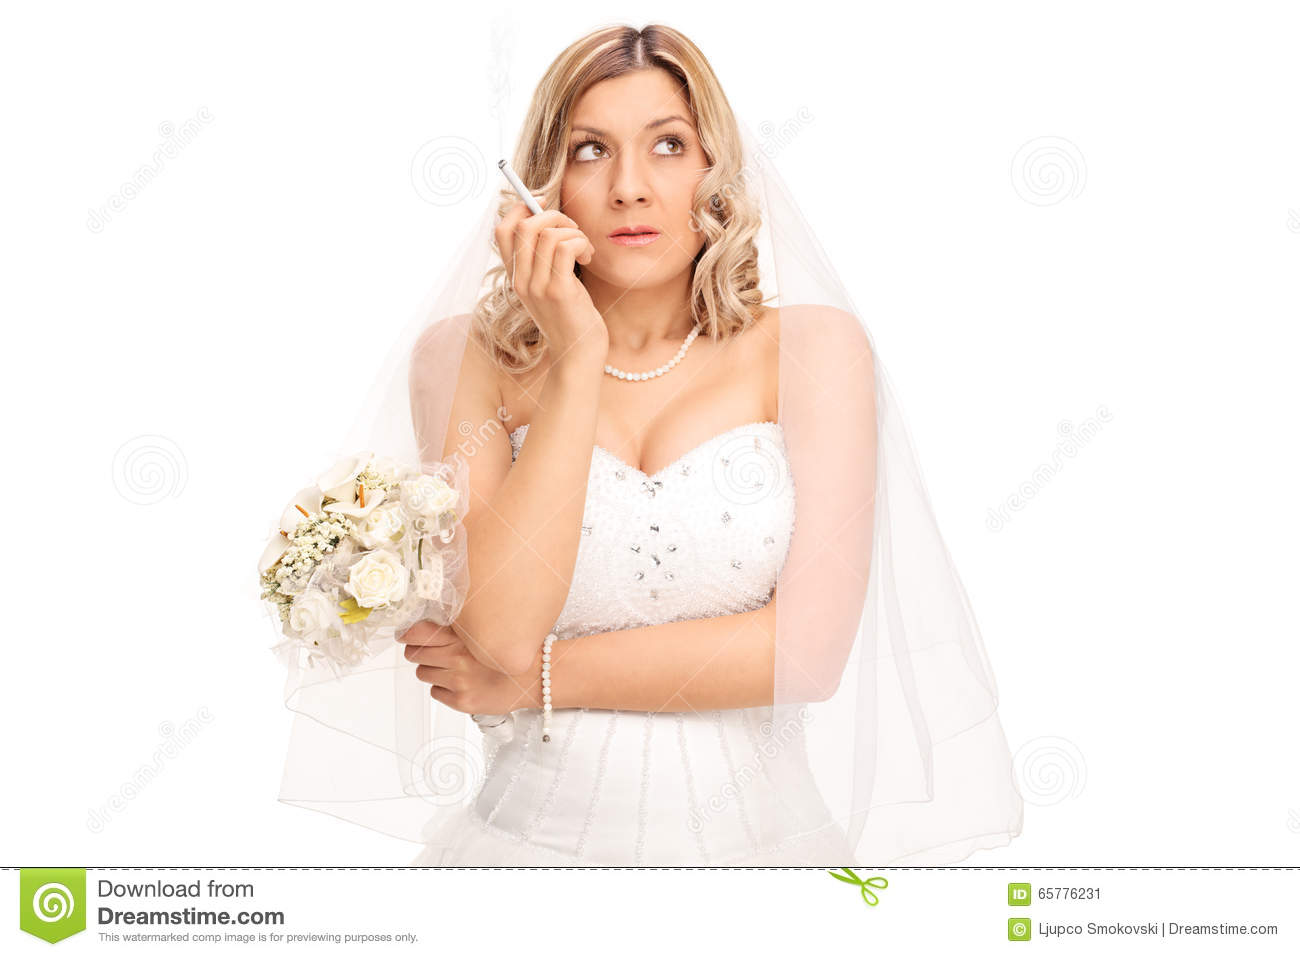 Young Nervous Bride In A White Wedding Dress Holding Bouquet And Smoking Cigarette Isolated On Background: Smoking Brides Wedding Dress At Websimilar.org